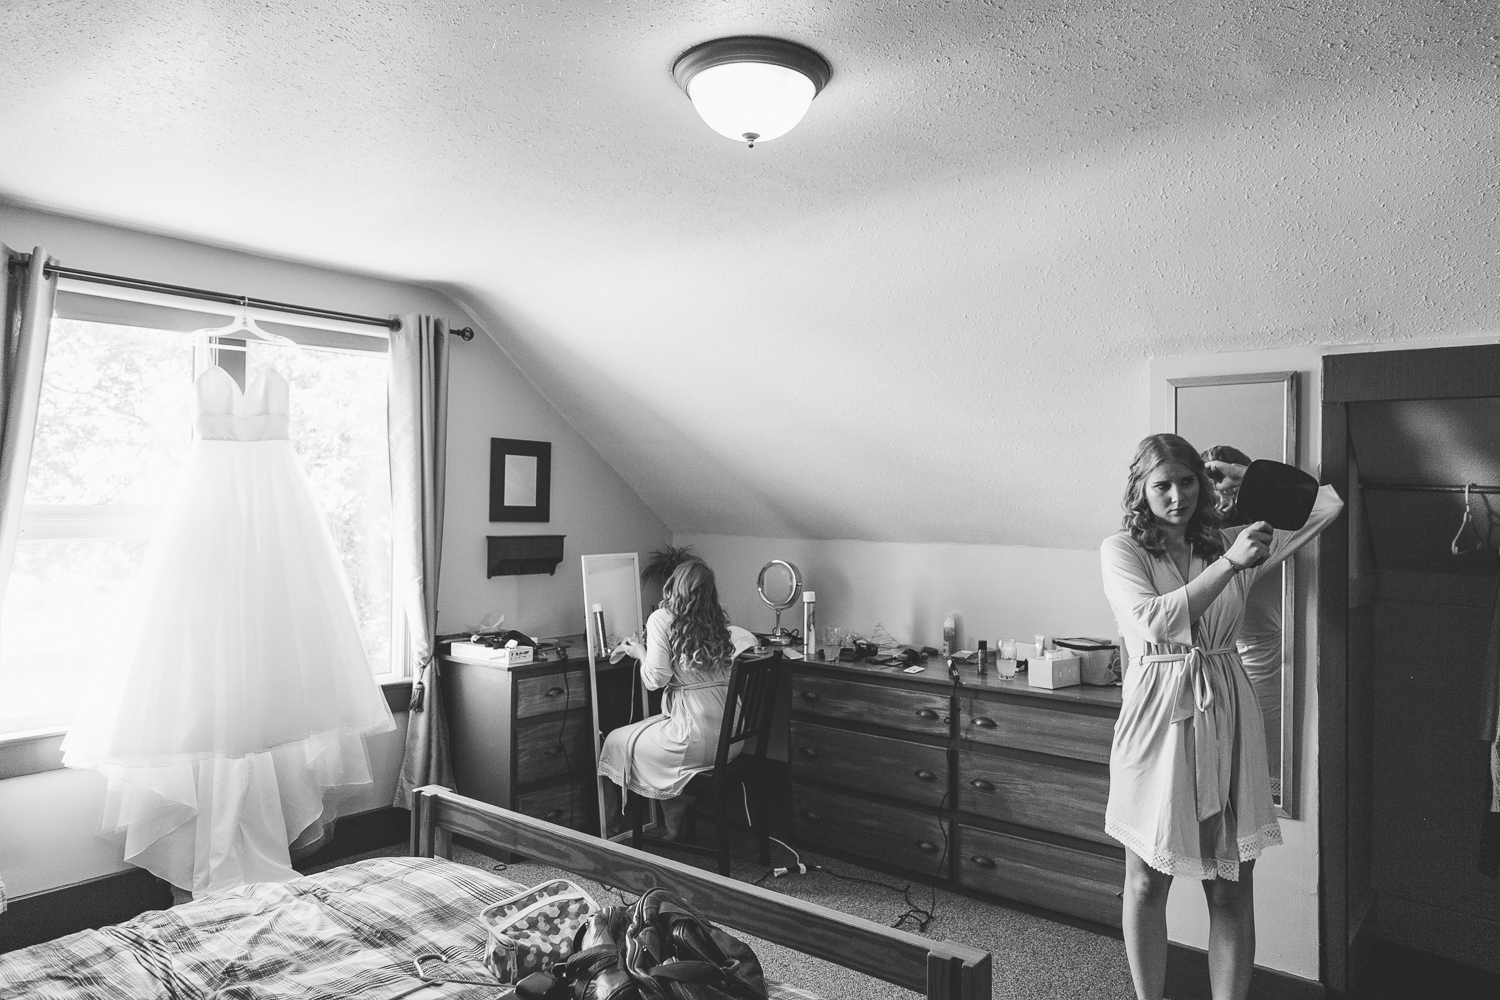 lethbridge-wedding-photographer-love-and-be-loved-photography-dan-tynnea-picture-image-photo-6.jpg